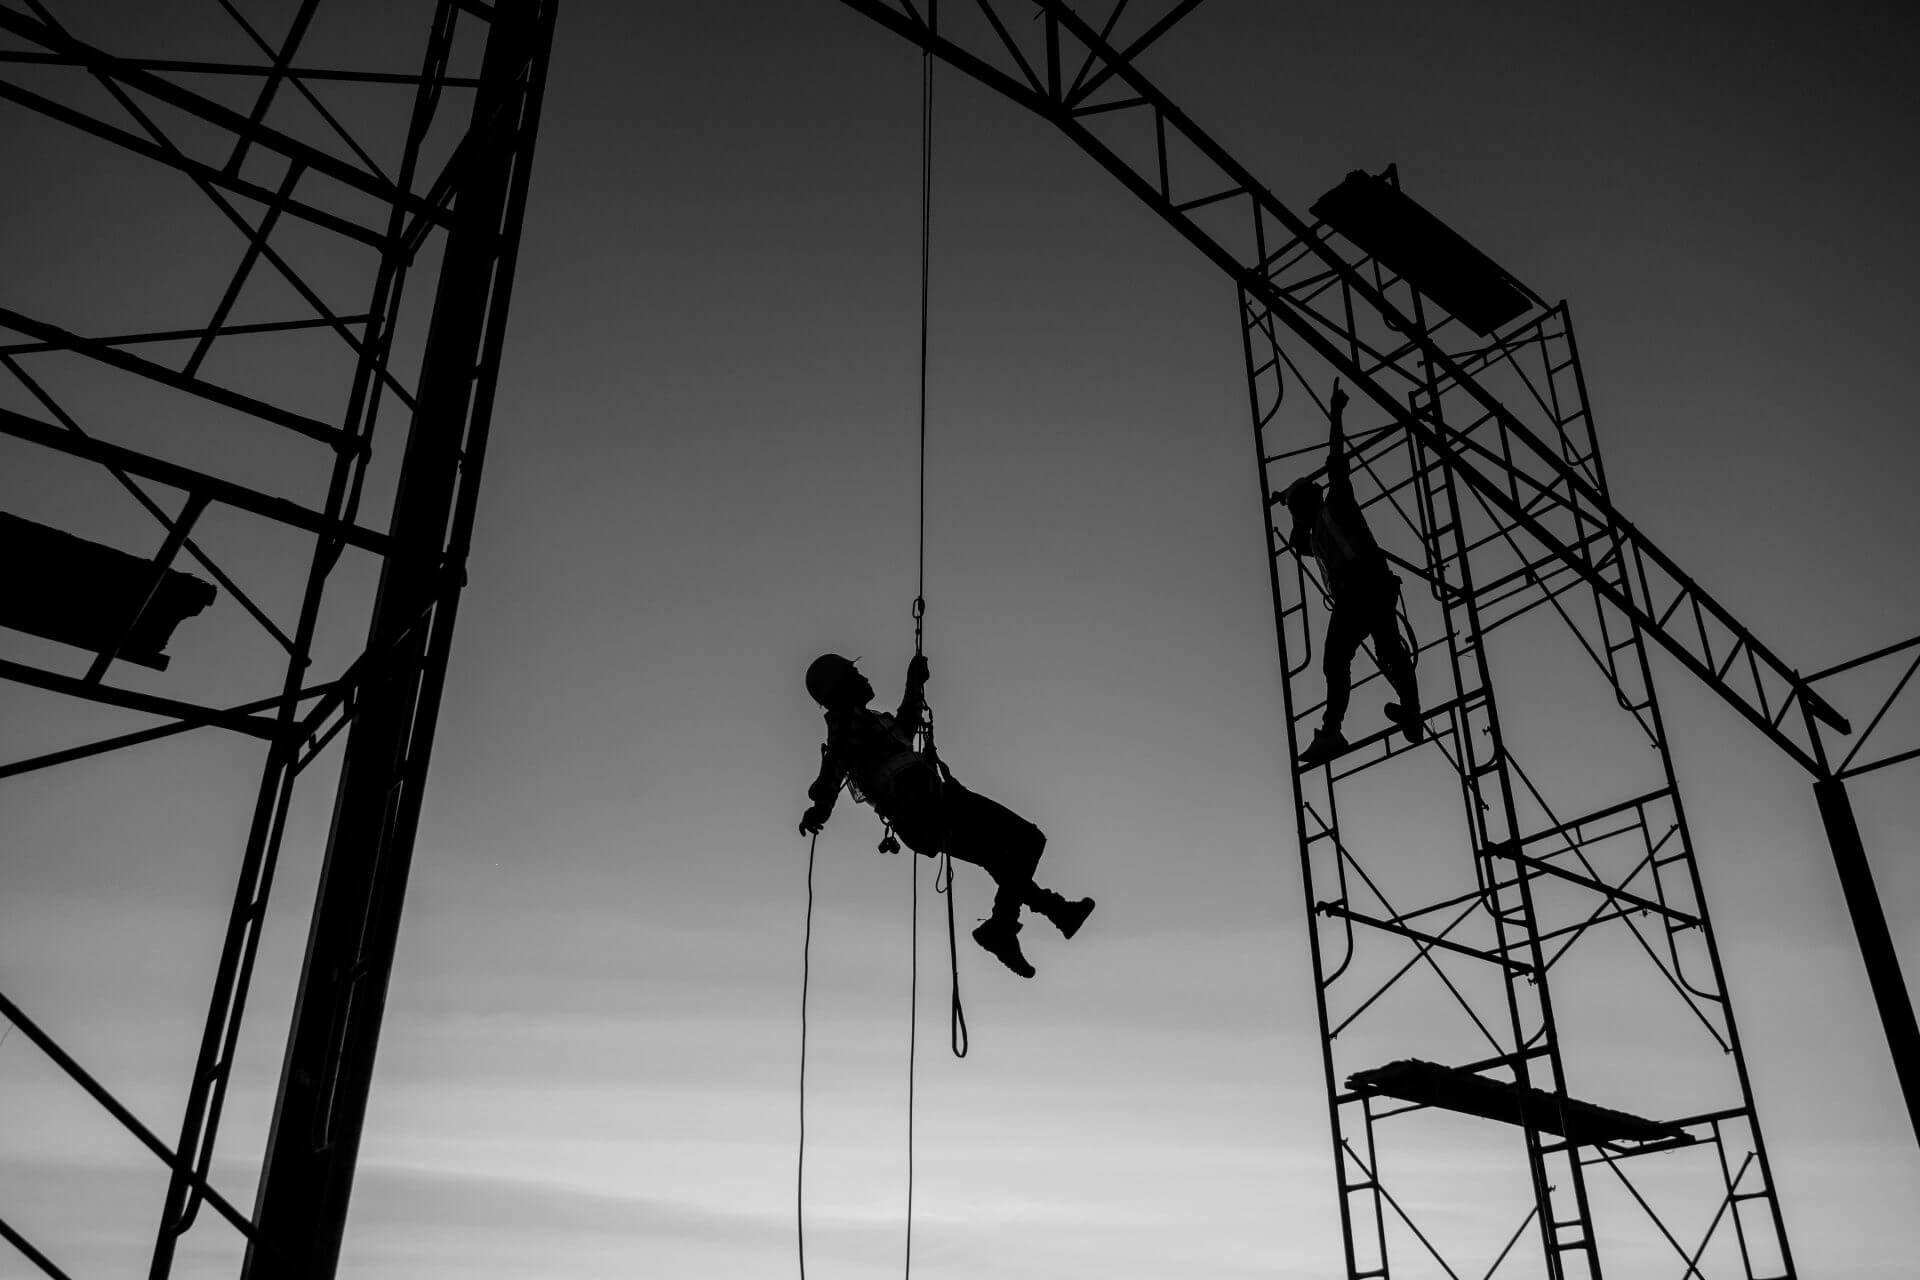 Male working abseiling on a construction site silhouette workerloading=